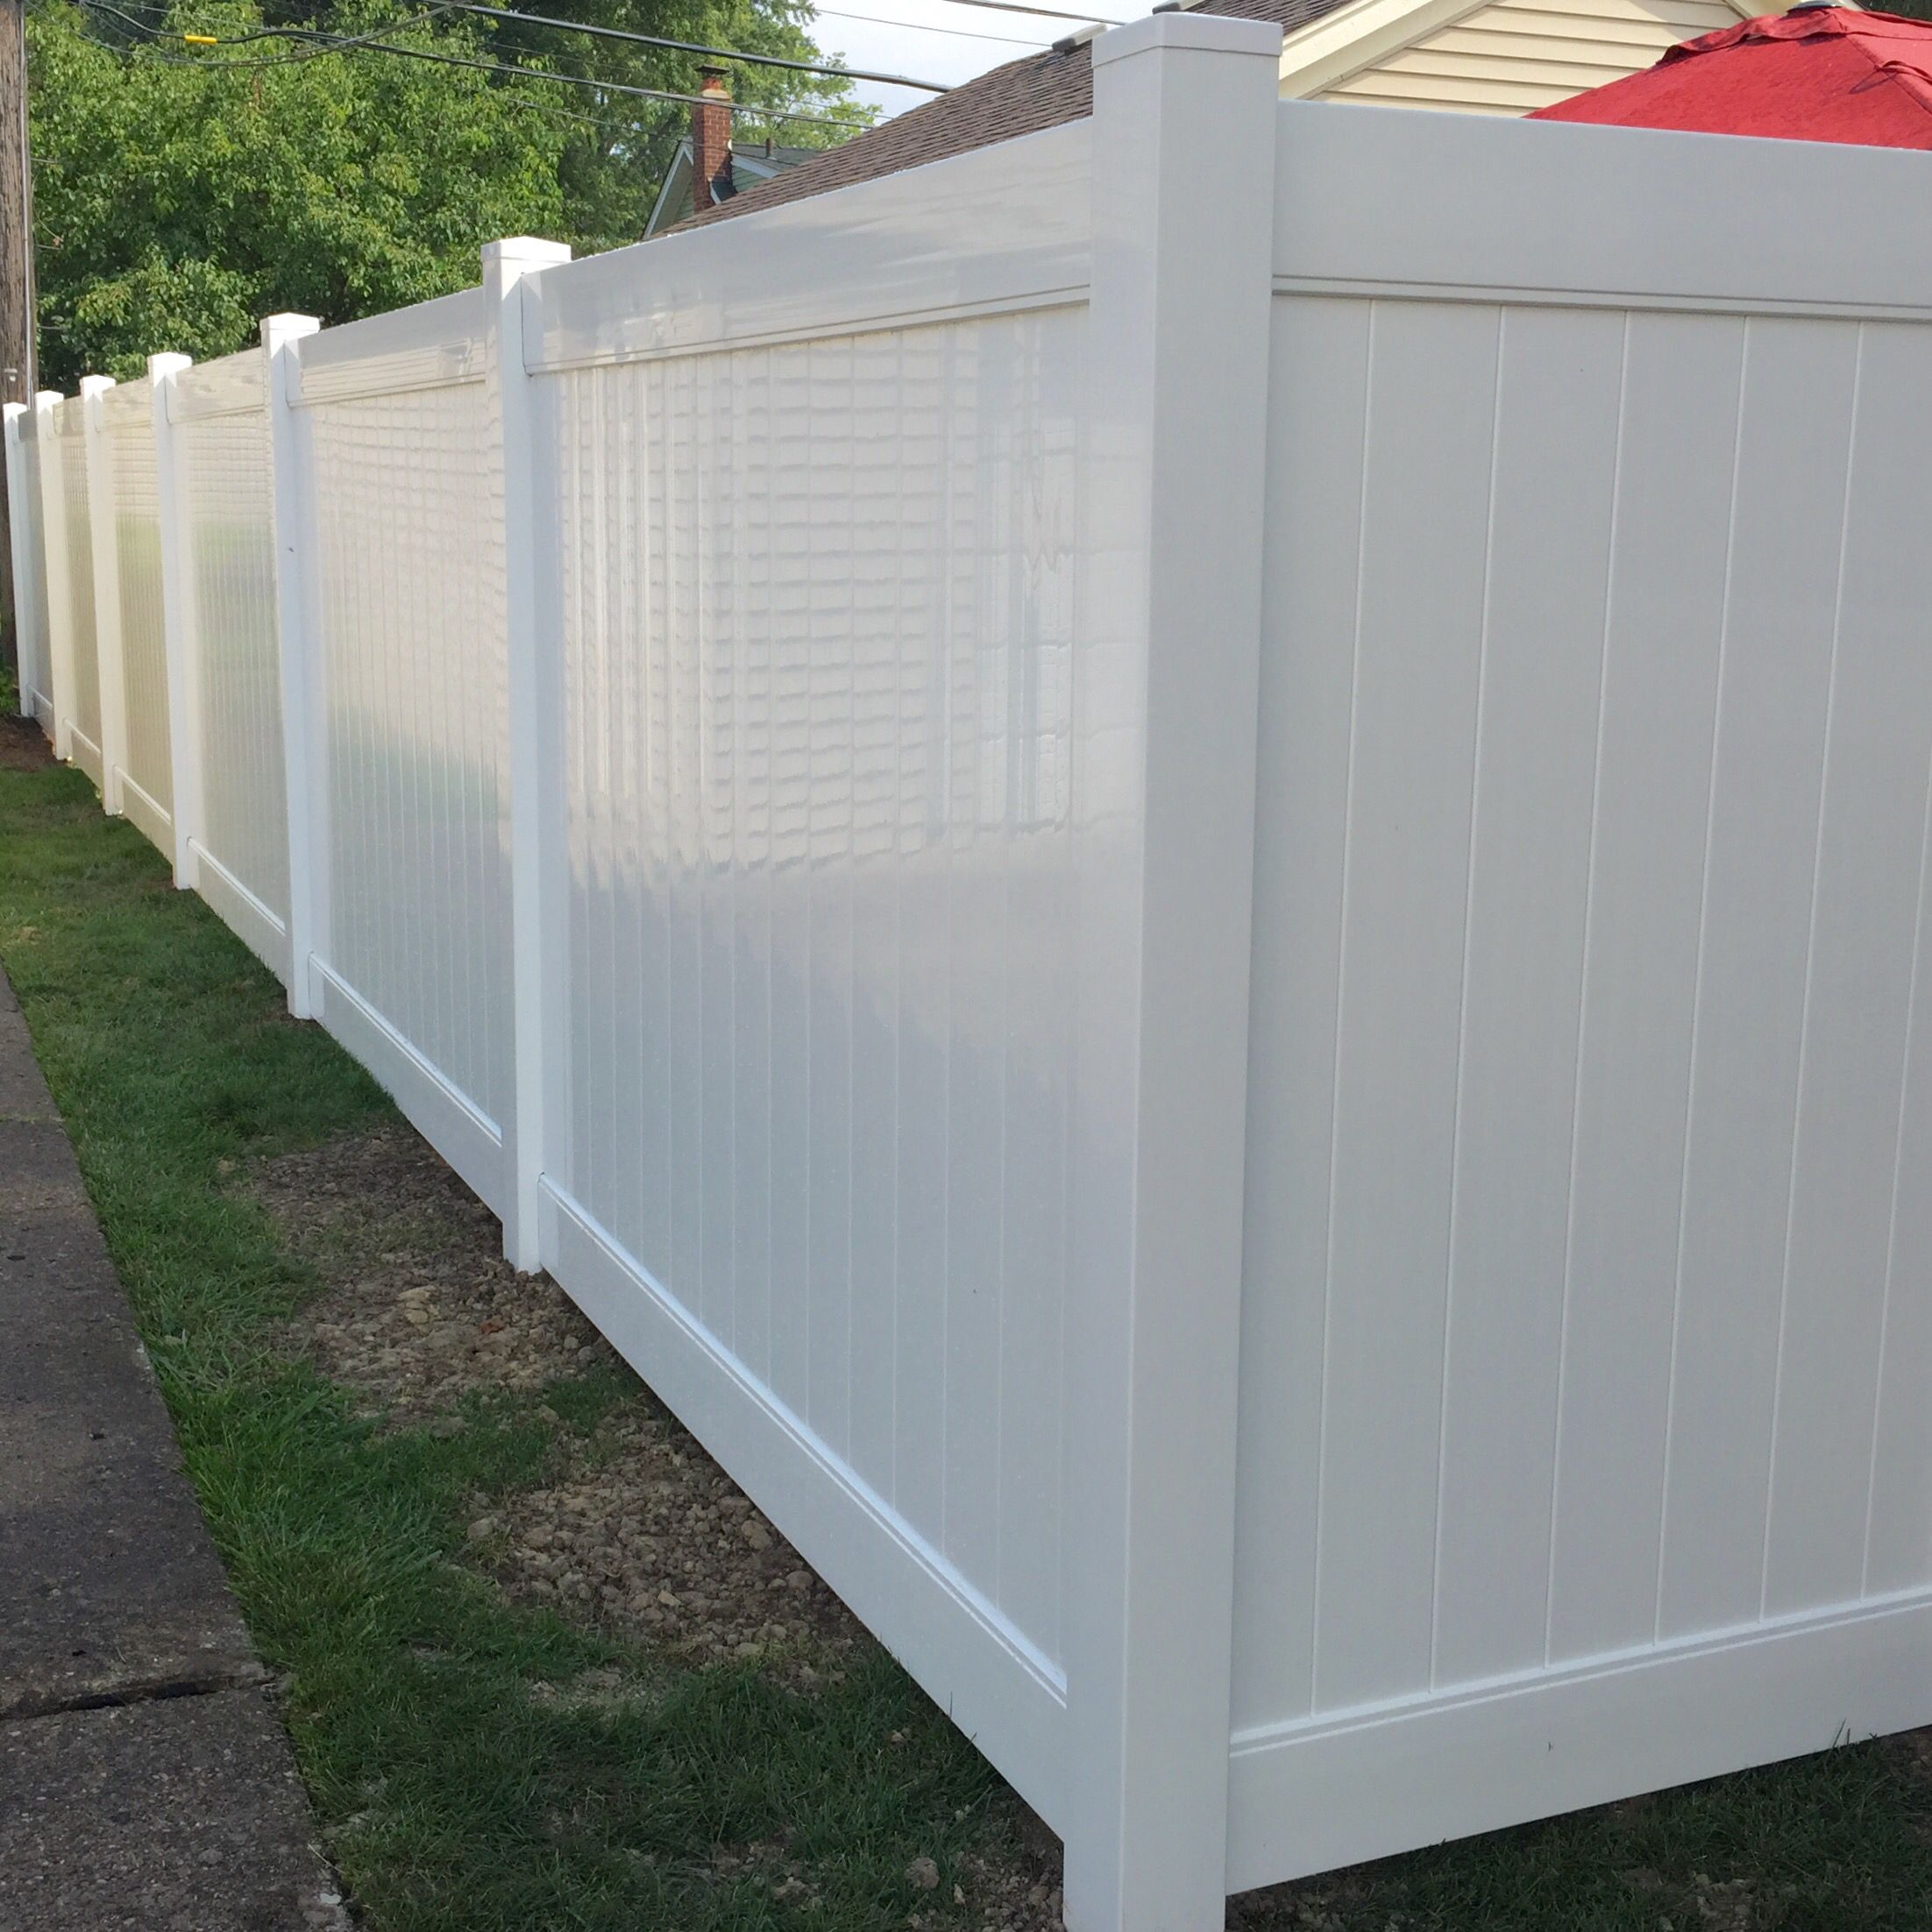 Vinyl privacy fence not all vinyl fences are equal in quality vinyl privacy fence not all vinyl fences are equal in quality for best quality baanklon Image collections